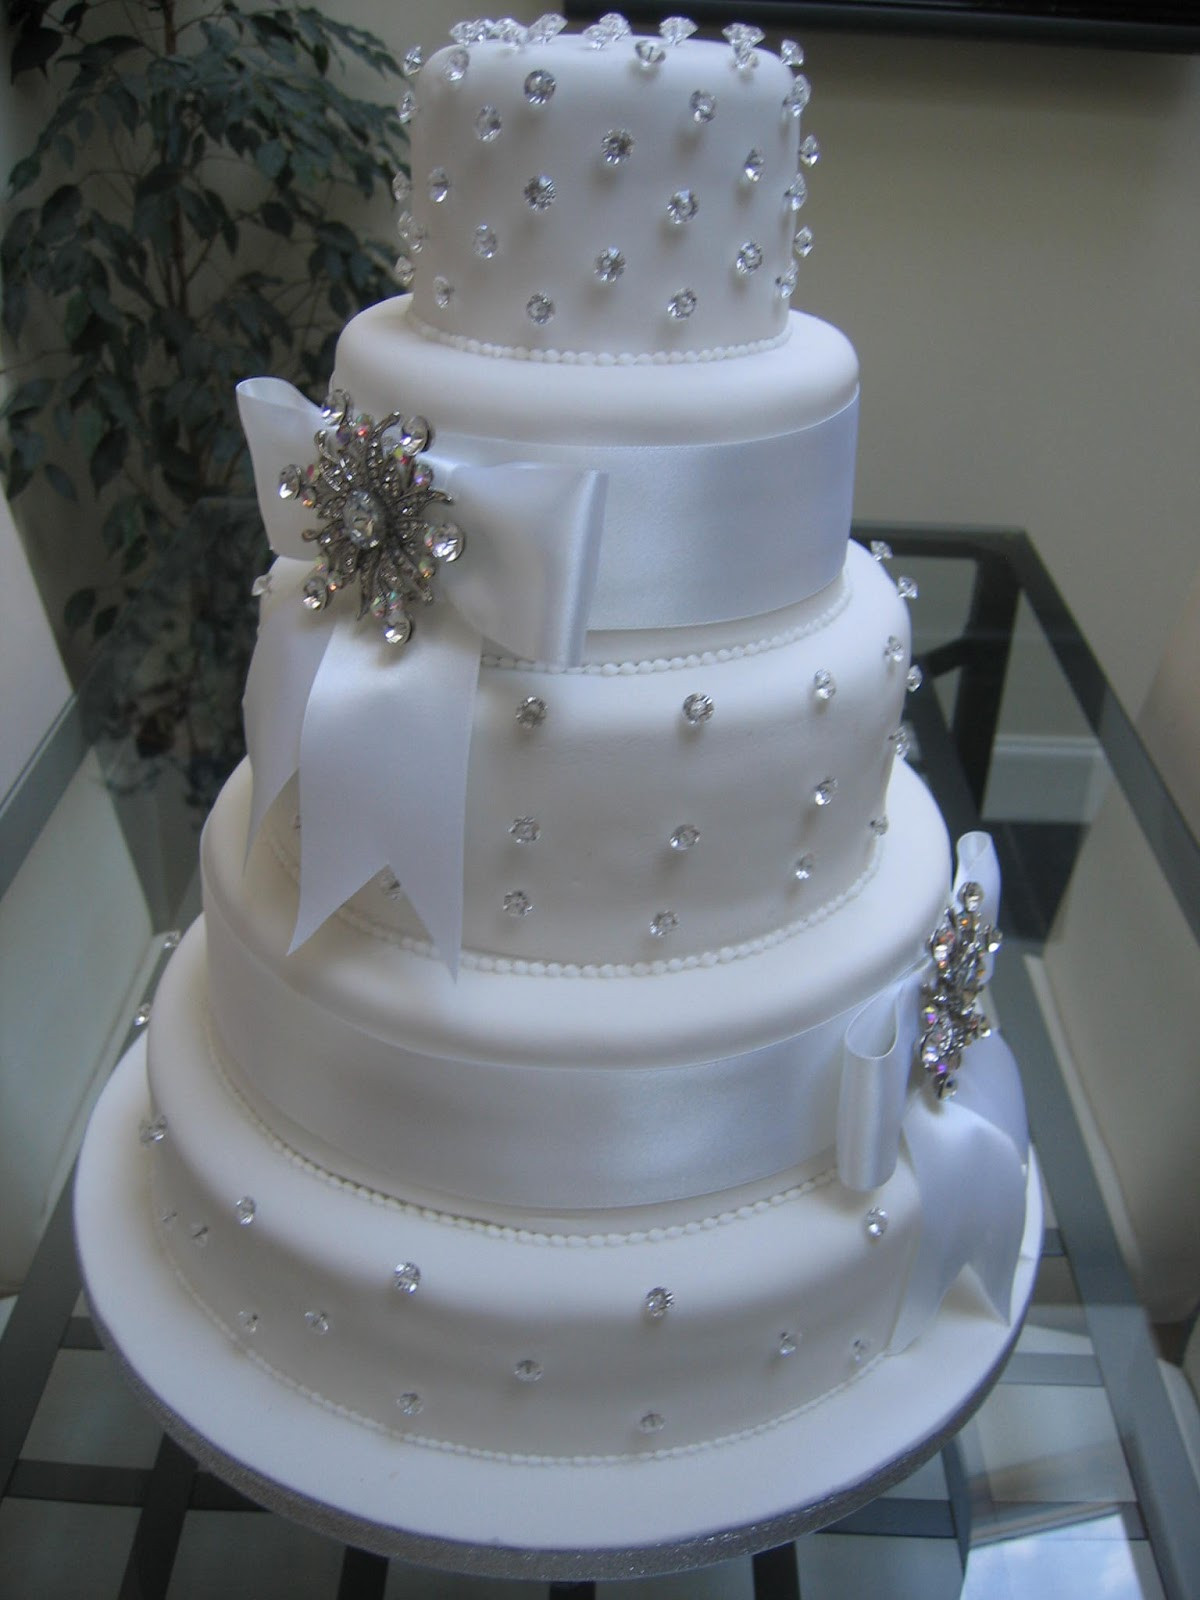 Elegant Wedding Cakes With Bling  Wedding Cake Bling Beautiful Cakes That Sparkle & Shine